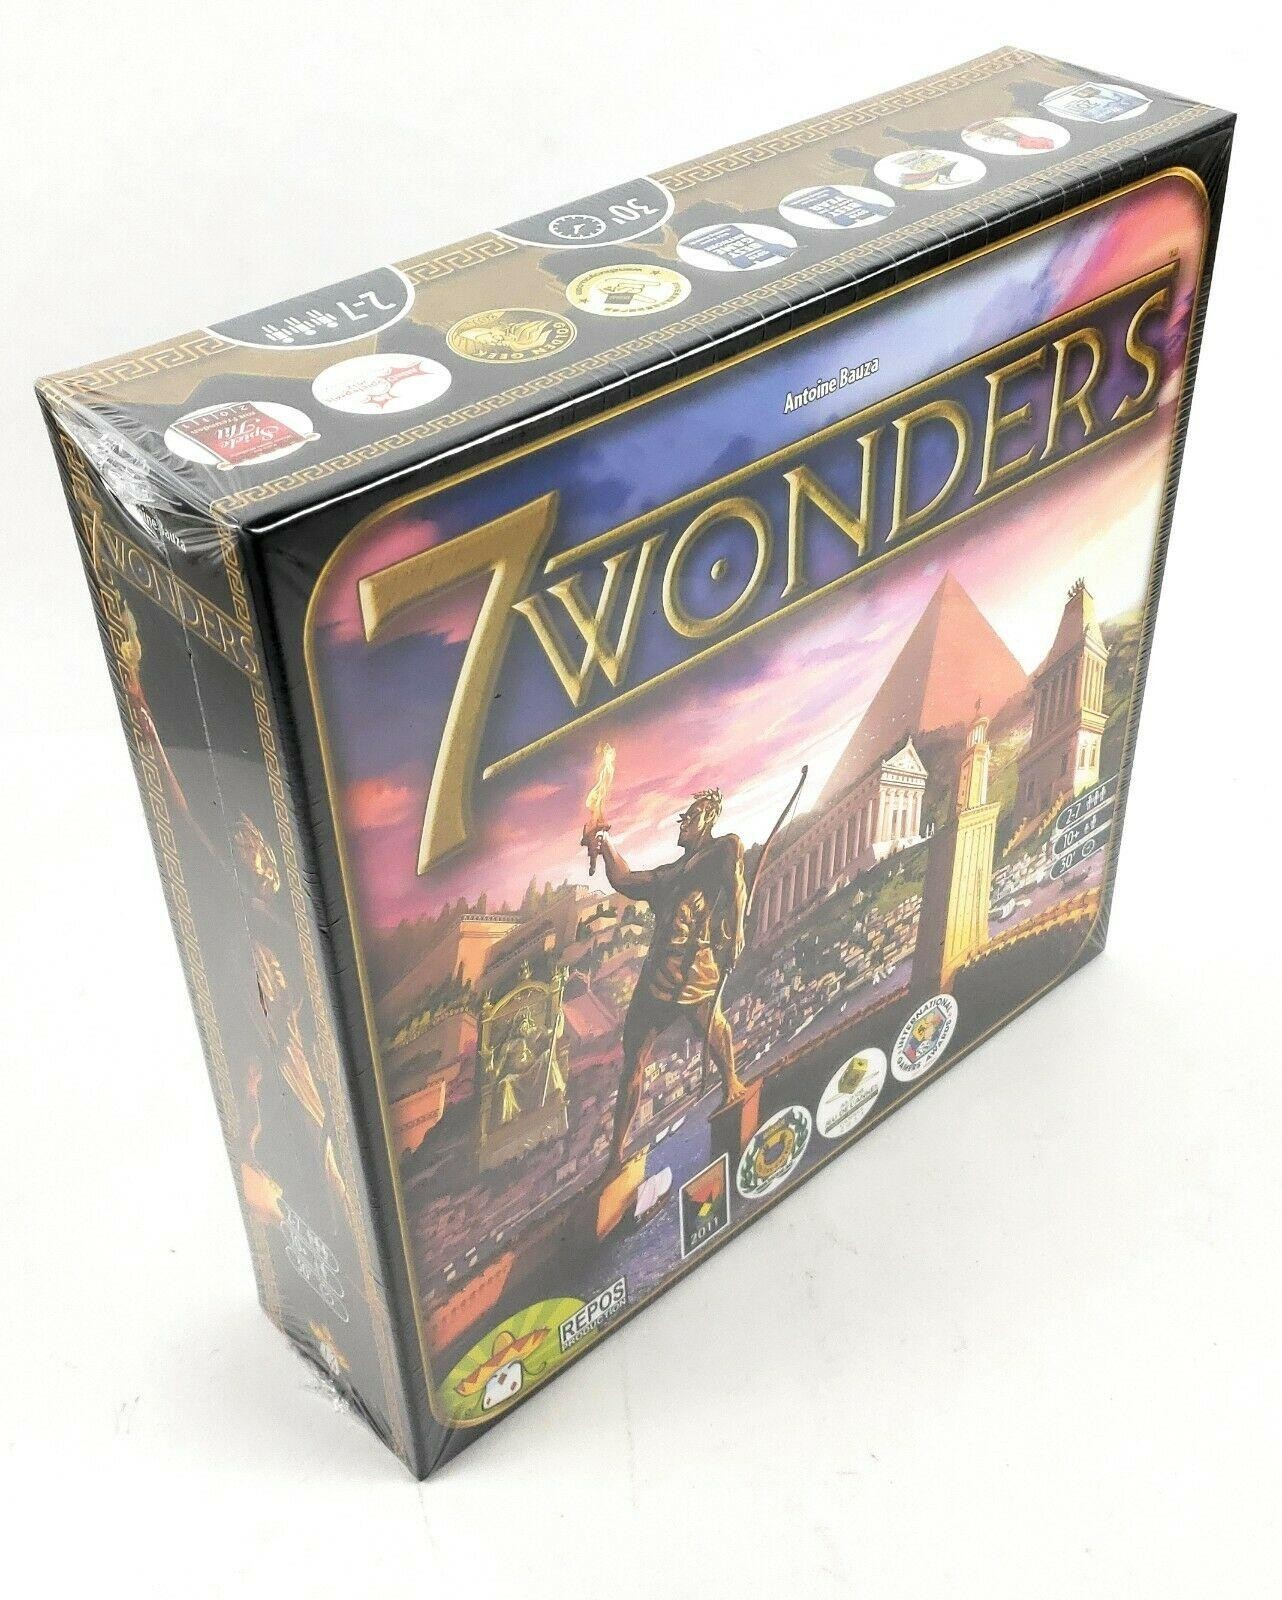 7 Wonders Board Game 2-7 Players Cards Game Family Home Entertainment Strategy Toy Table Games in English(China)